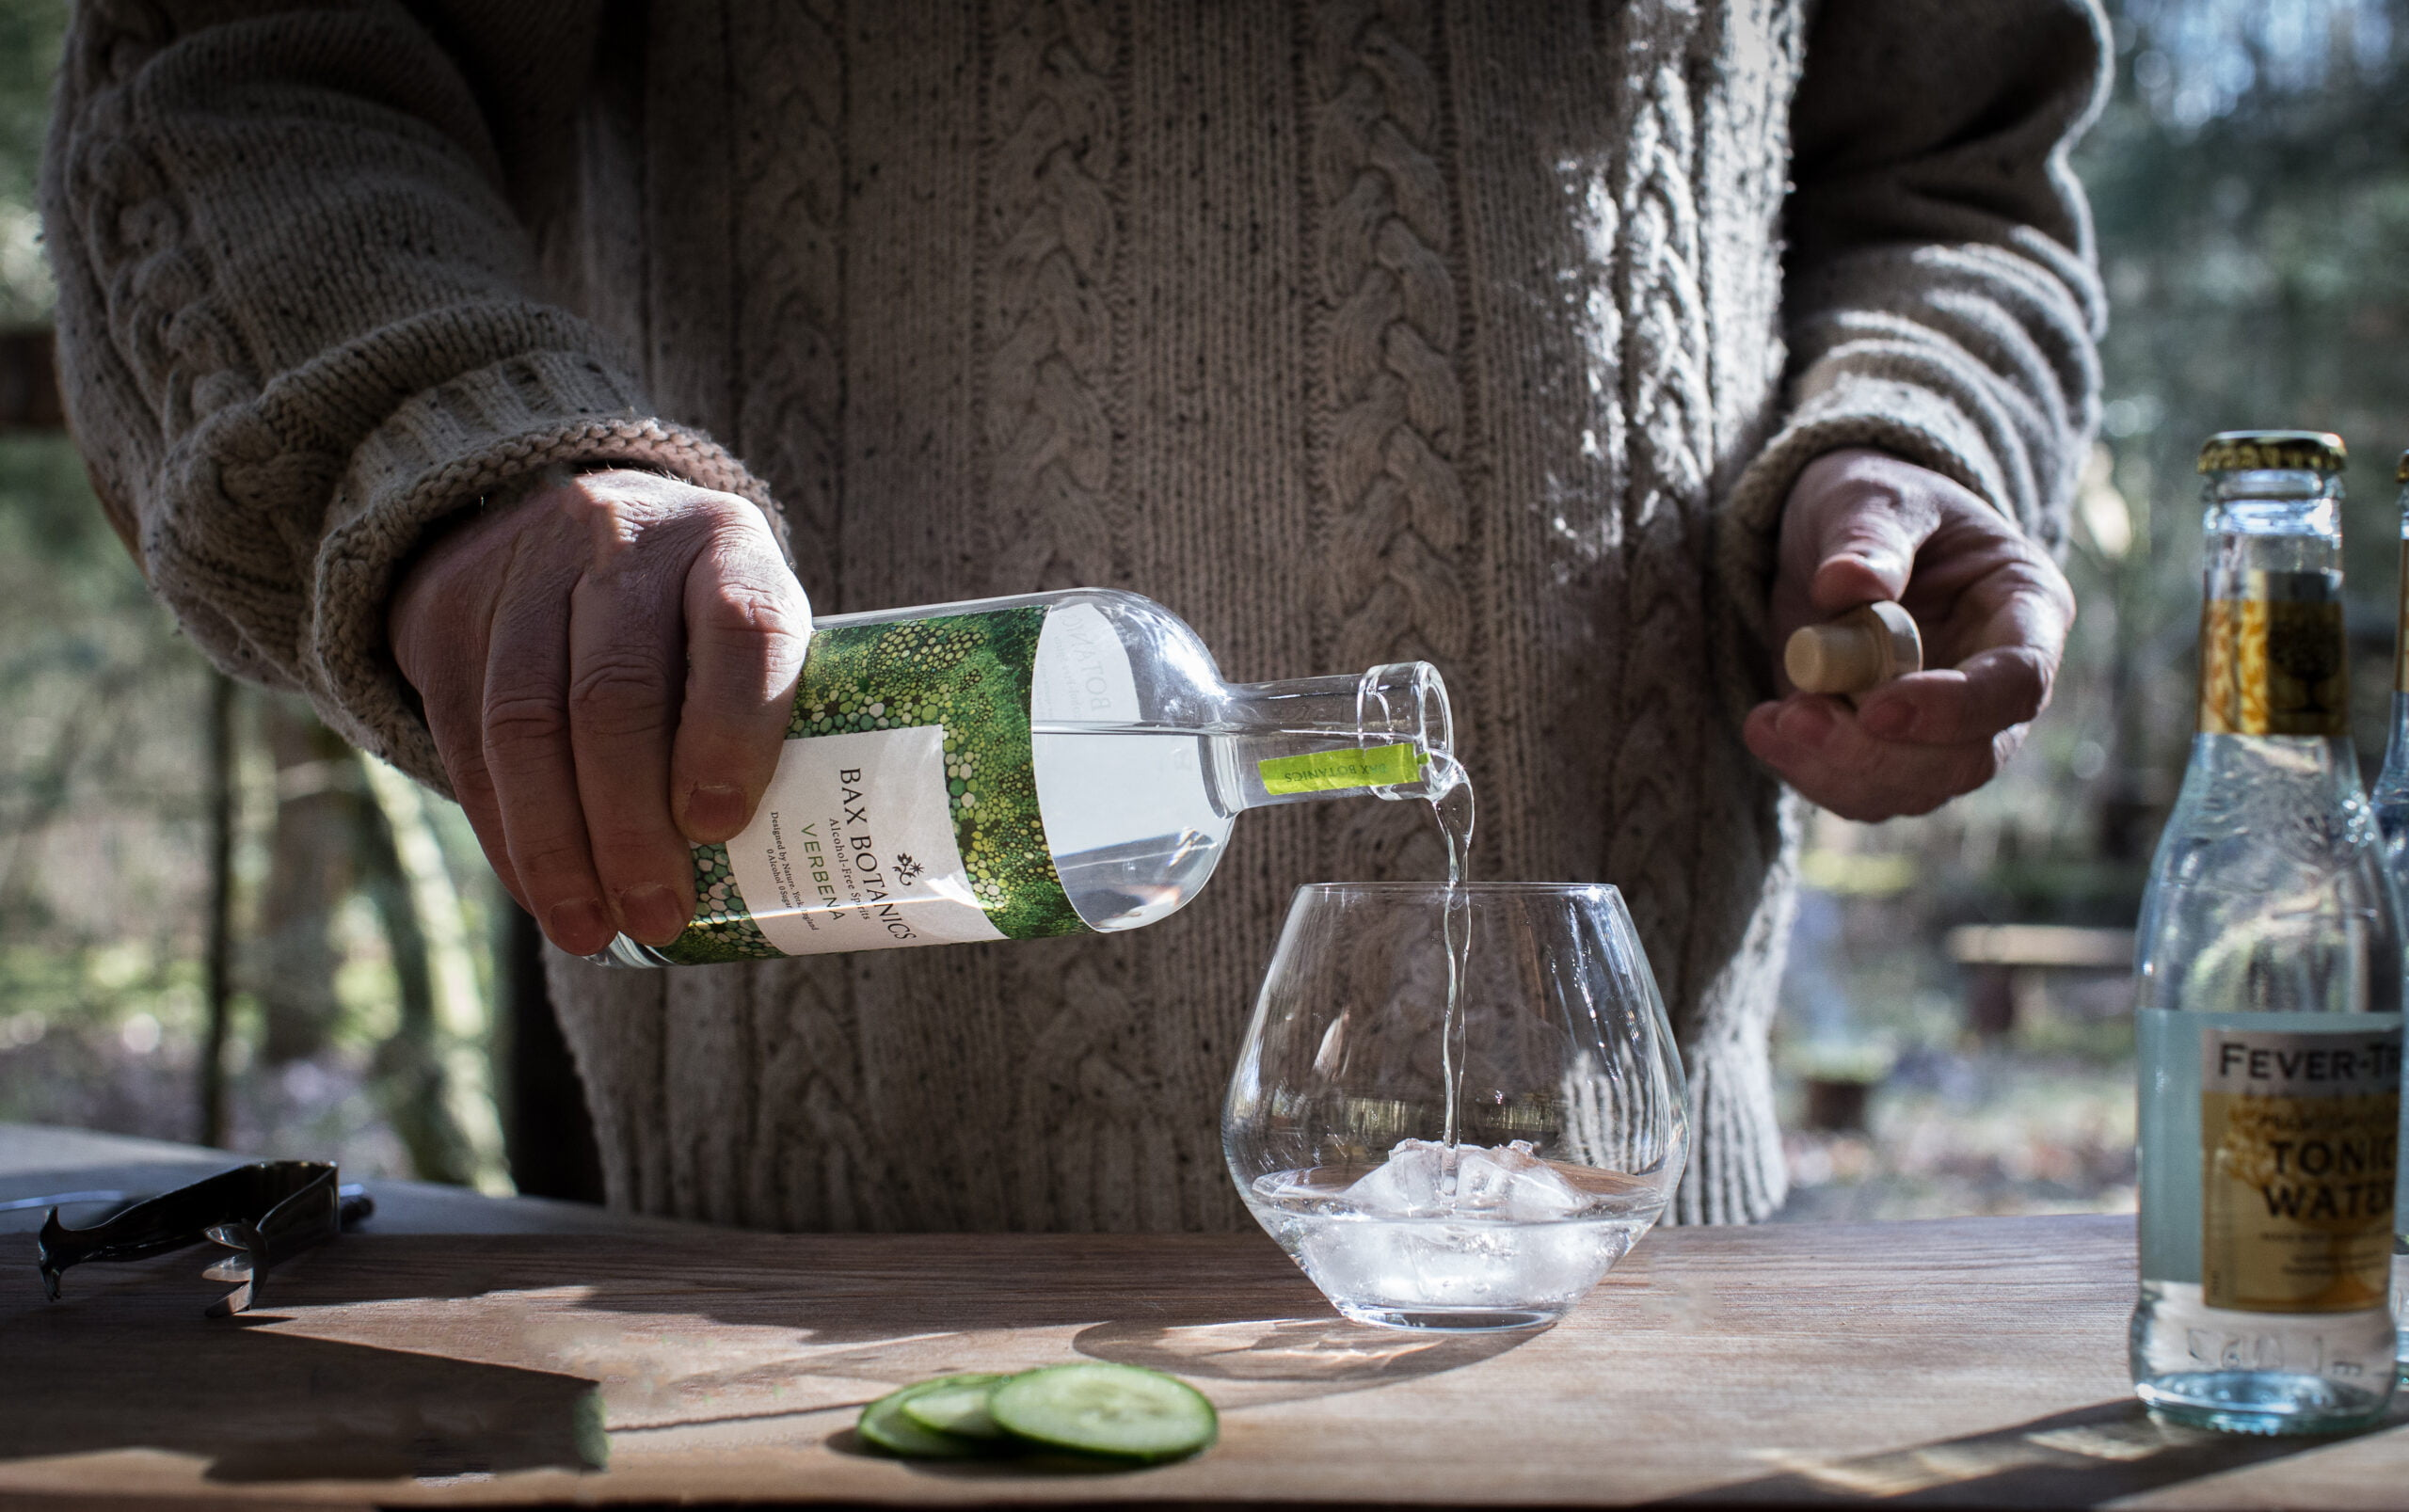 Founder Chris Bax pouring a verbena and tonic